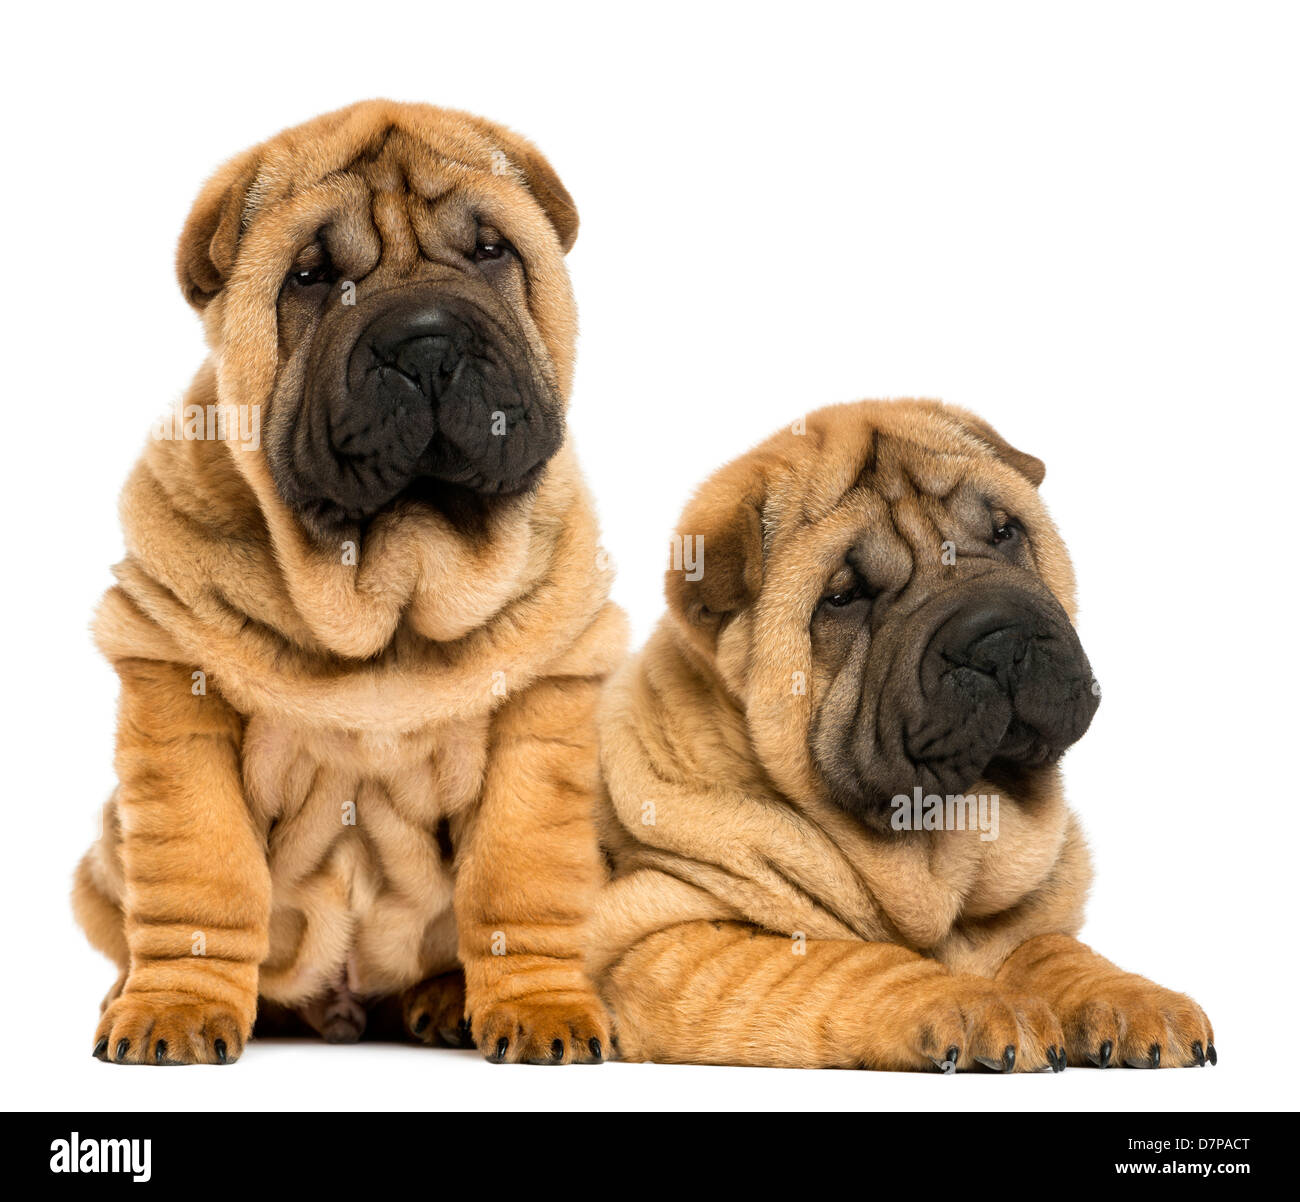 Two Shar pei puppies sitting and lying next to each other against white background - Stock Image